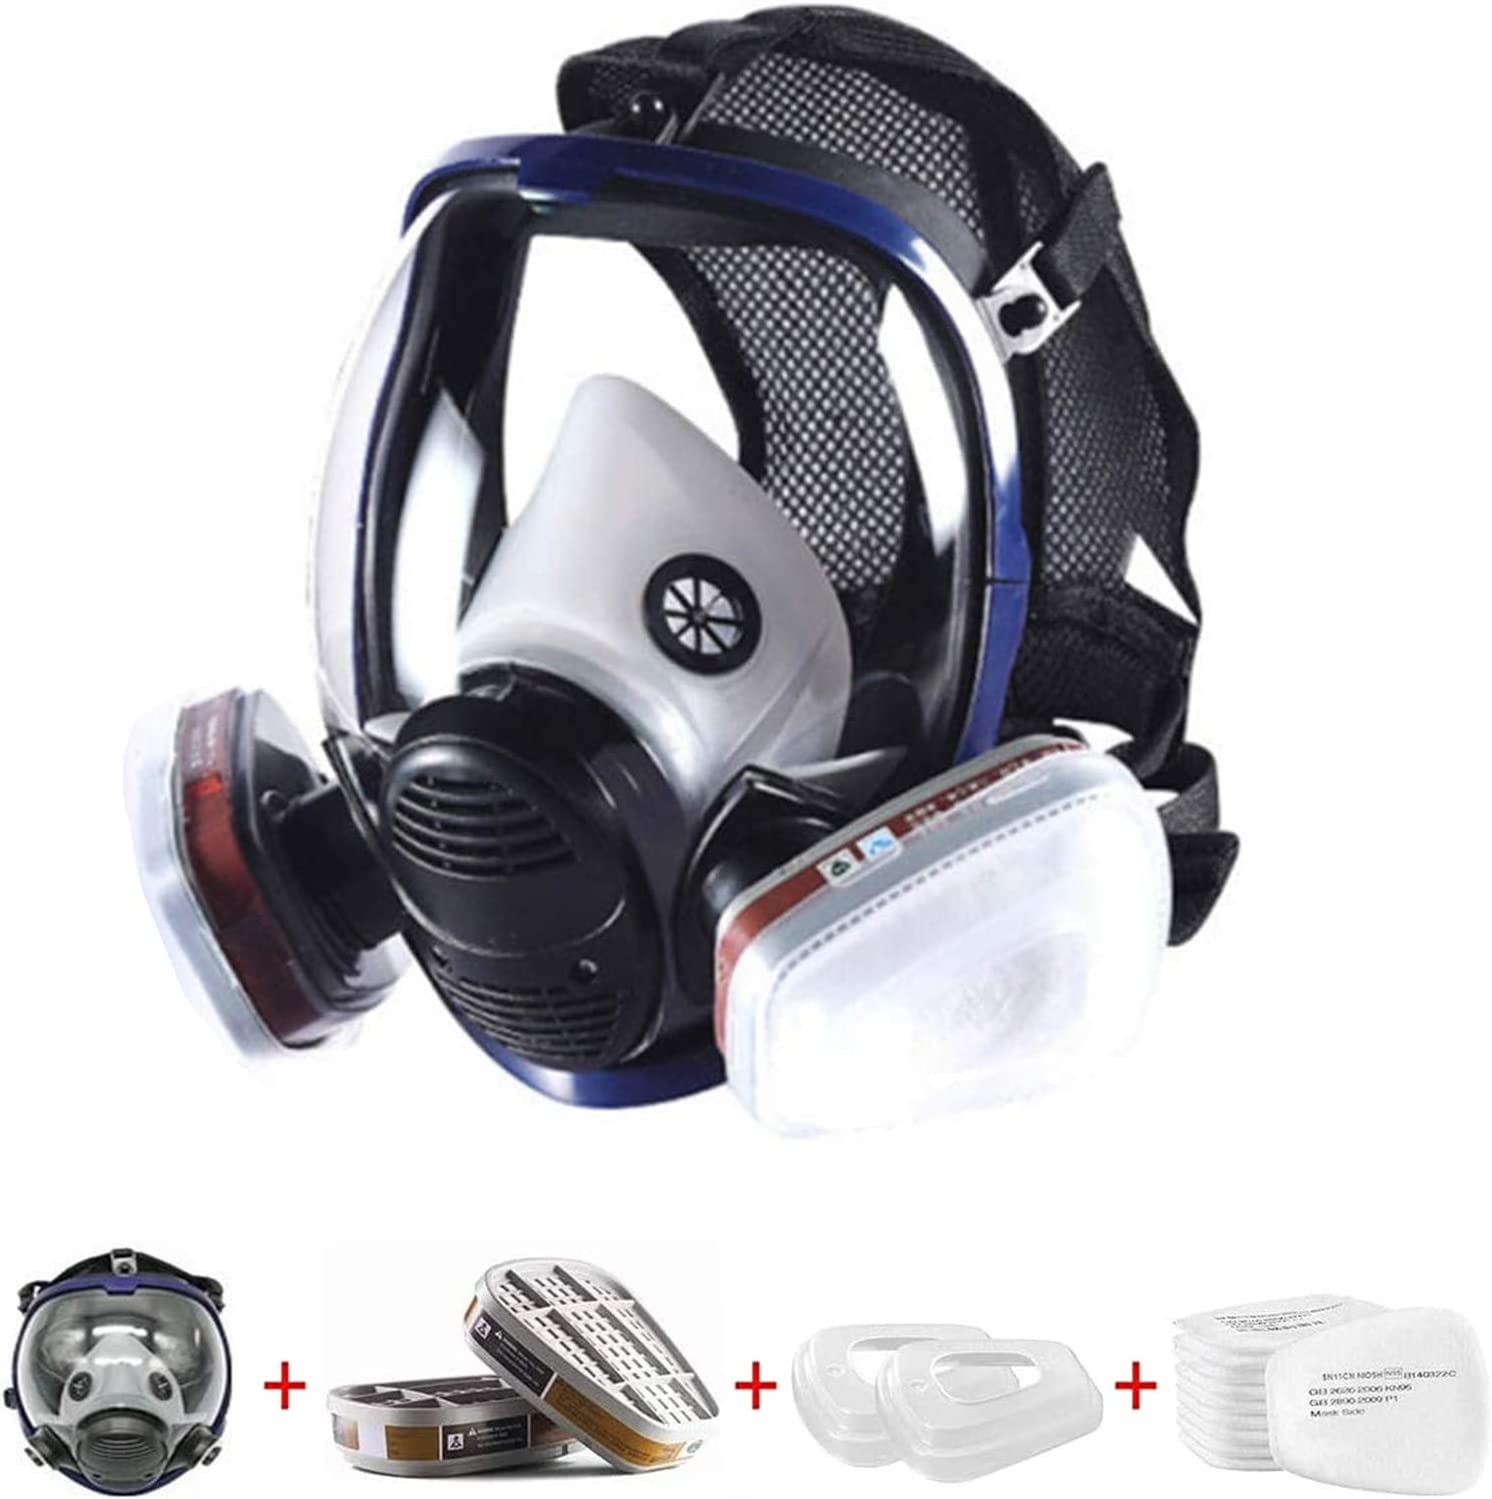 15 100% quality warranty in 1 Full Face Respirator Widely with Used Filters Organic Spring new work one after another